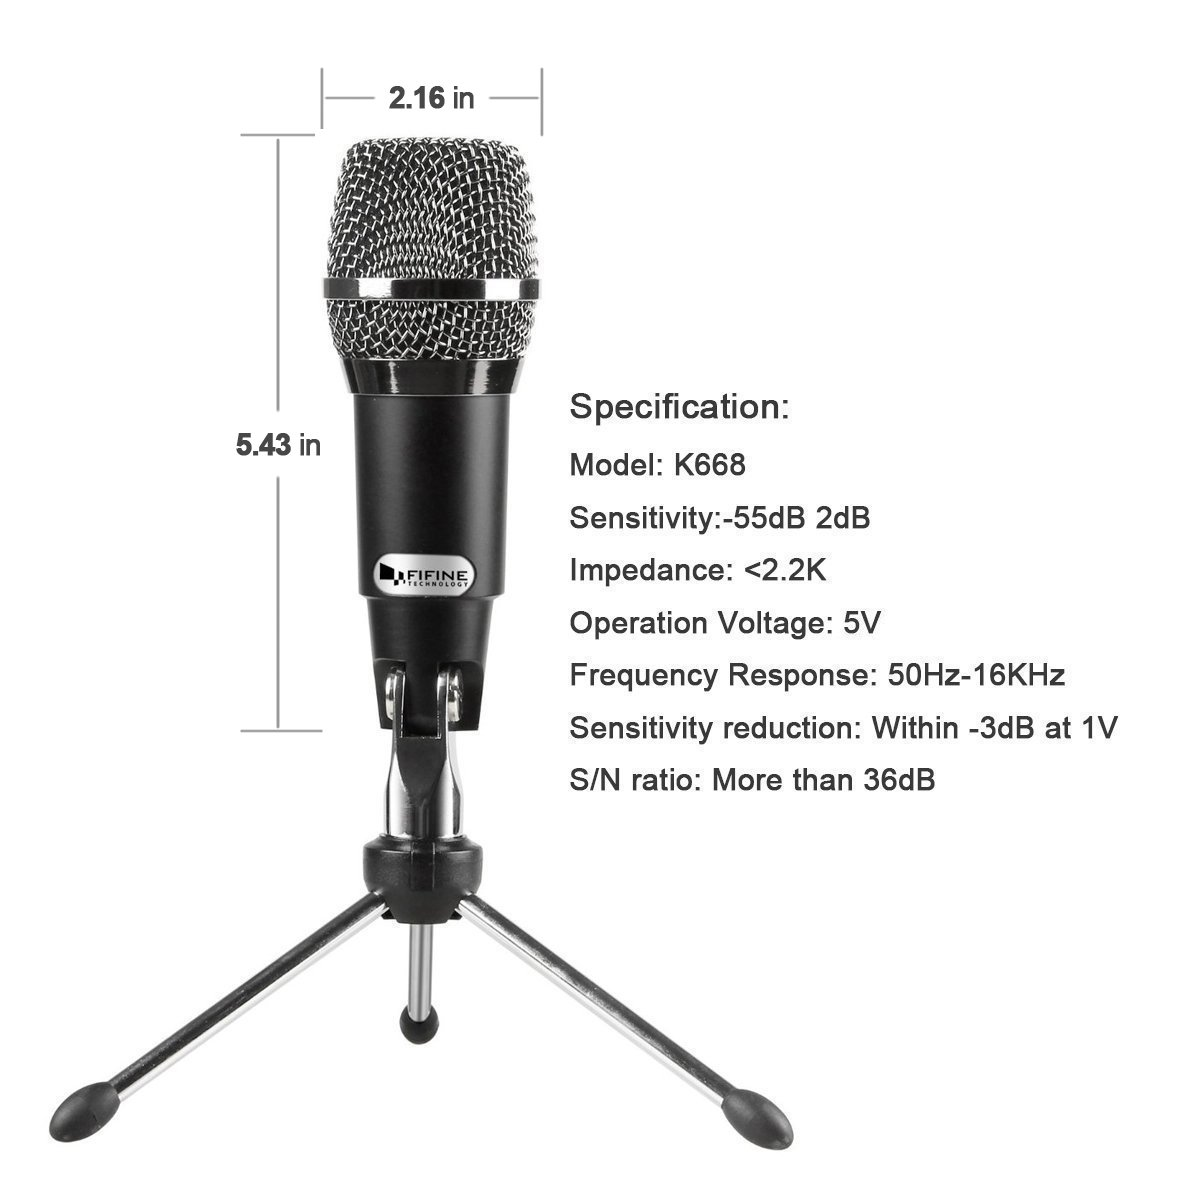 FIFINE TECHNOLOGY USB Microphone,Fifine Plug &Play Home Studio USB Condenser Microphone for Skype, Recordings for YouTube, Google Voice Search, Games(Windows/Mac)-K668 by FIFINE TECHNOLOGY (Image #3)